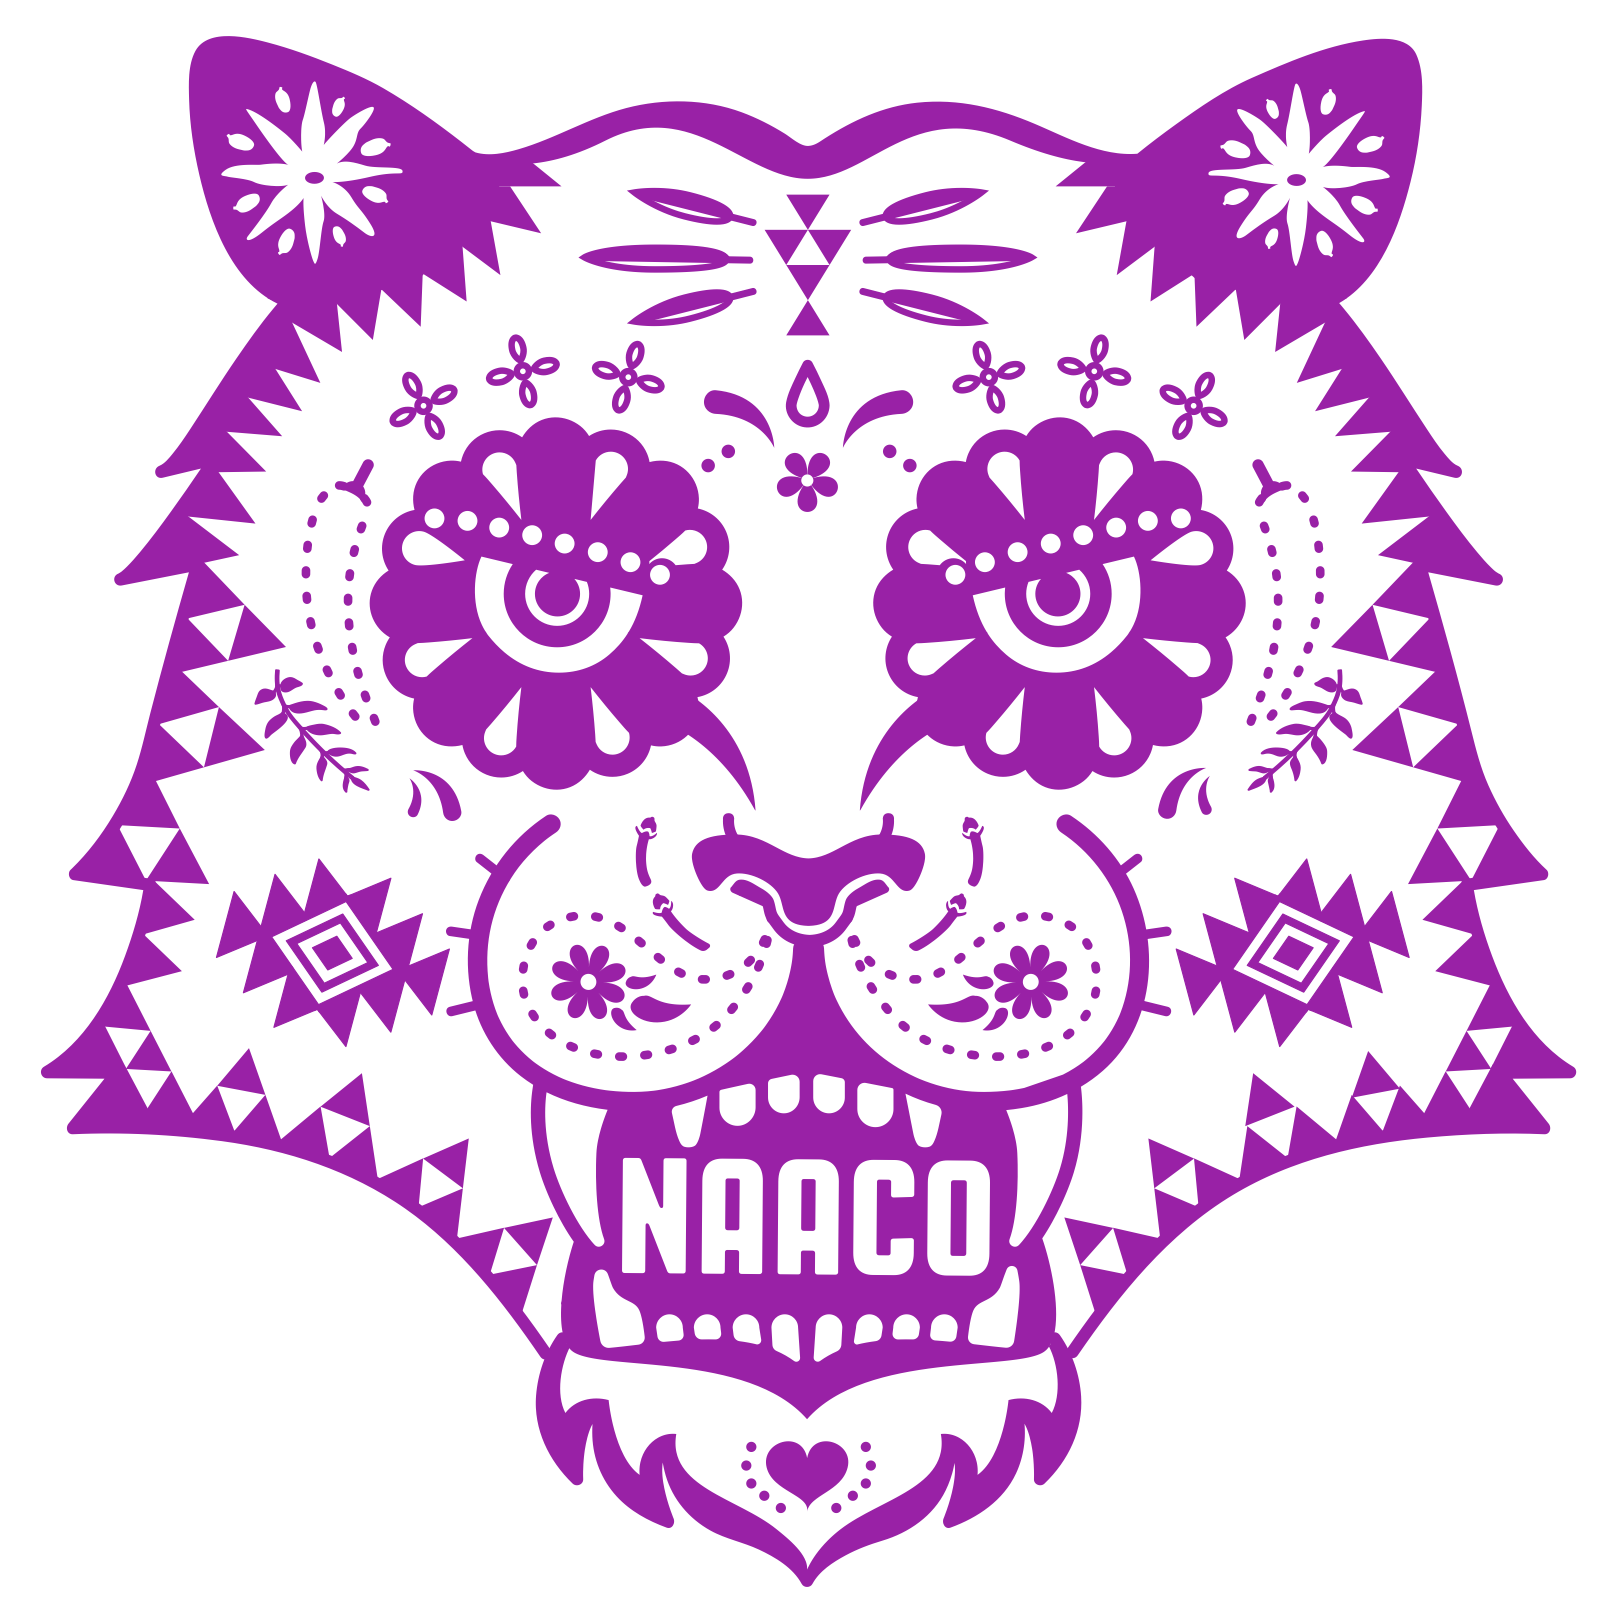 Naaco.png